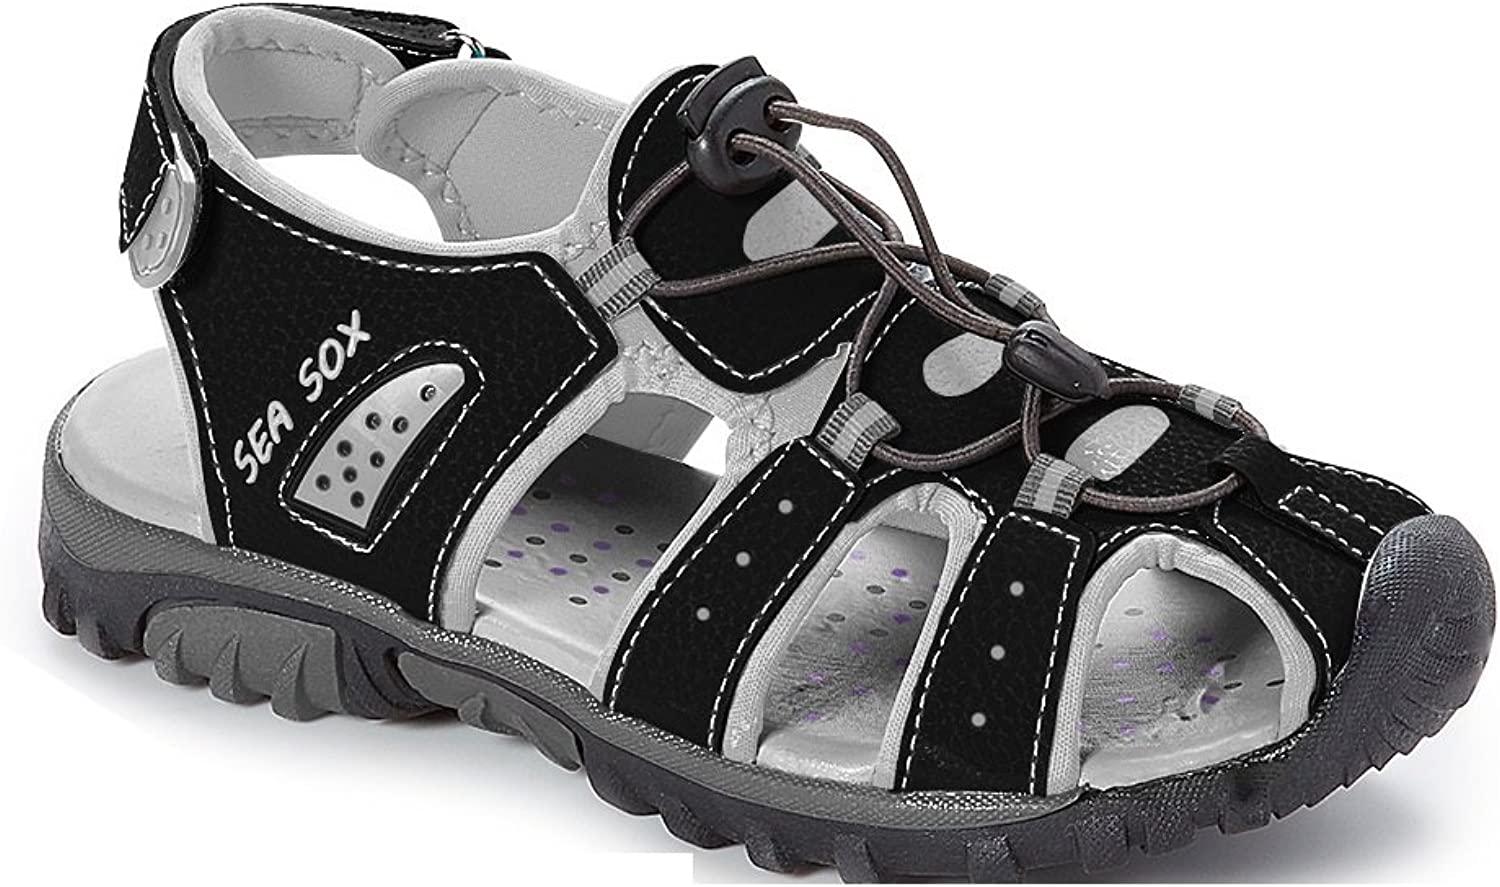 WETIKE Kids Sandals Closed-Toe Outdoor Sport Sandals for Girls Summer Beach Two Straps Boys Sandals Leather Toddler//Little Kid//Big Kid